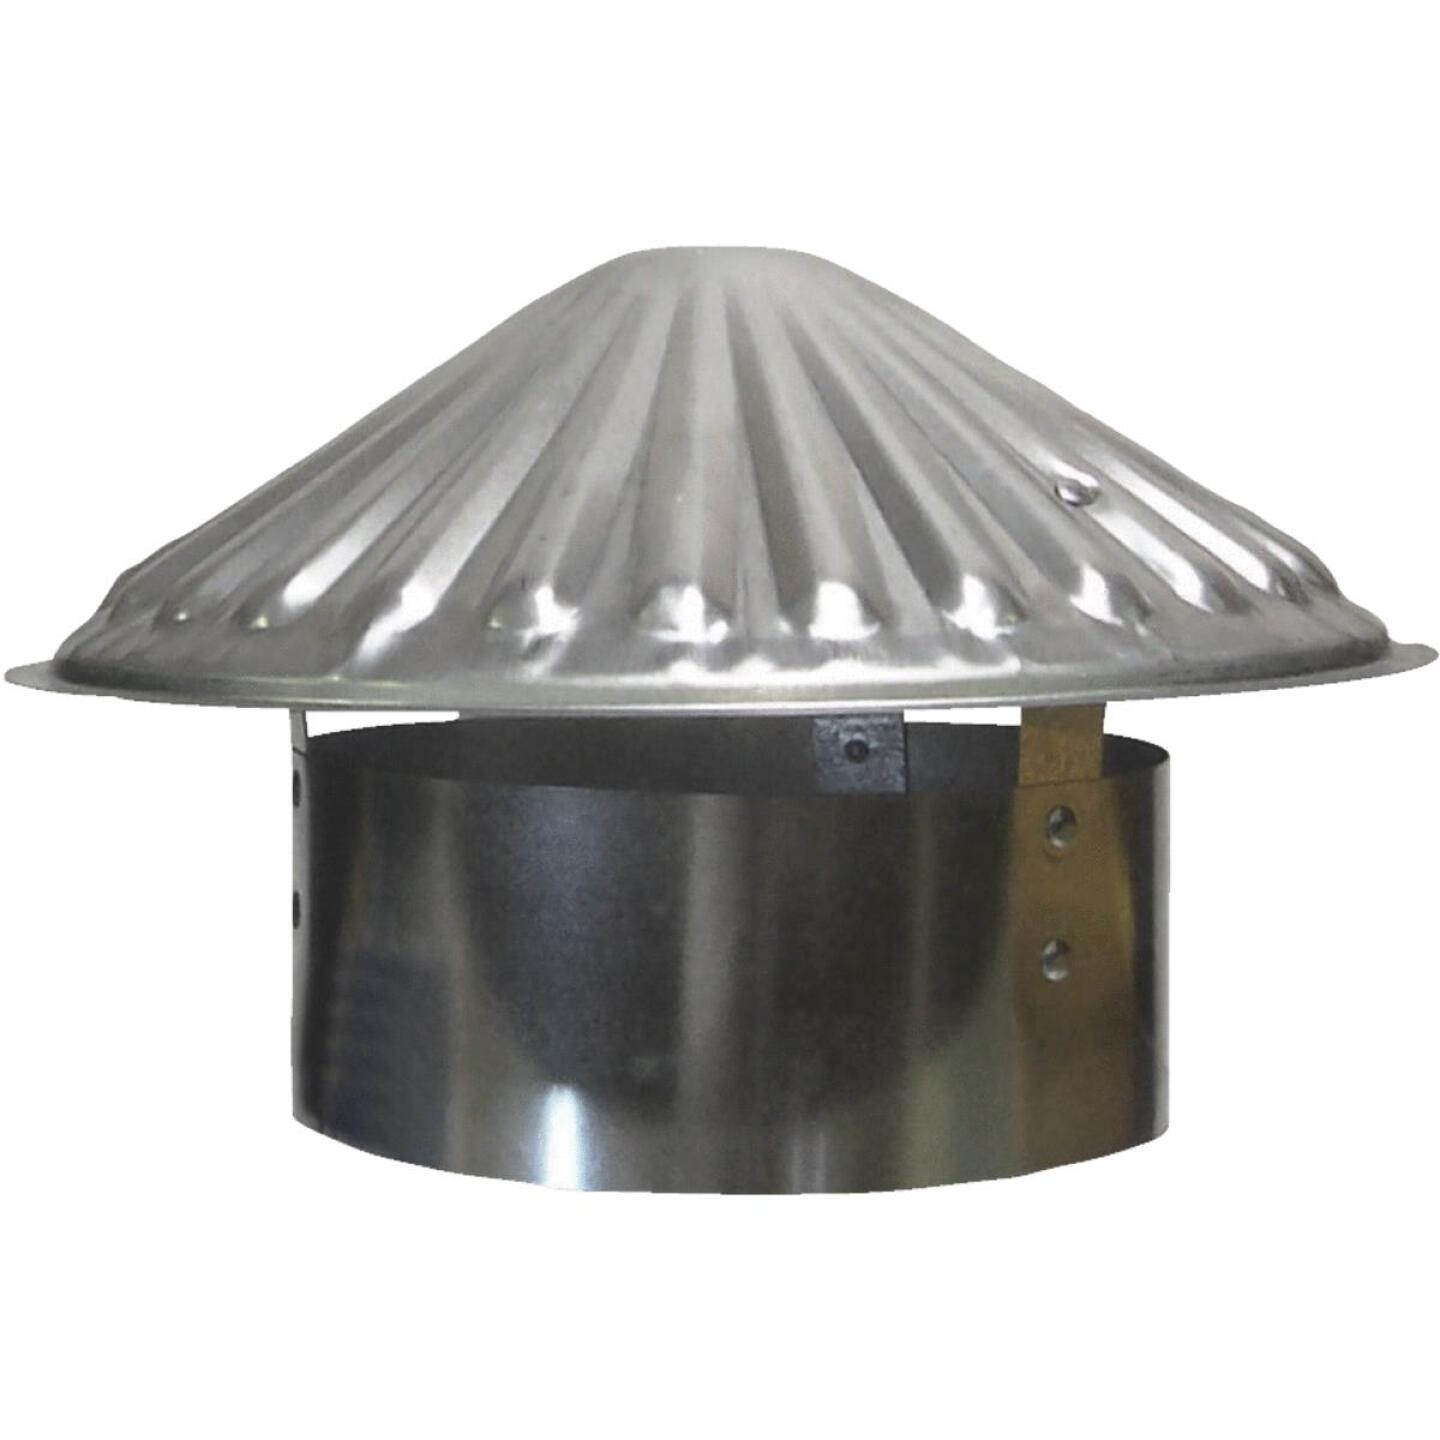 S & K Galvanized Steel 7 In. x 11 In. Vent Pipe Cap Image 1